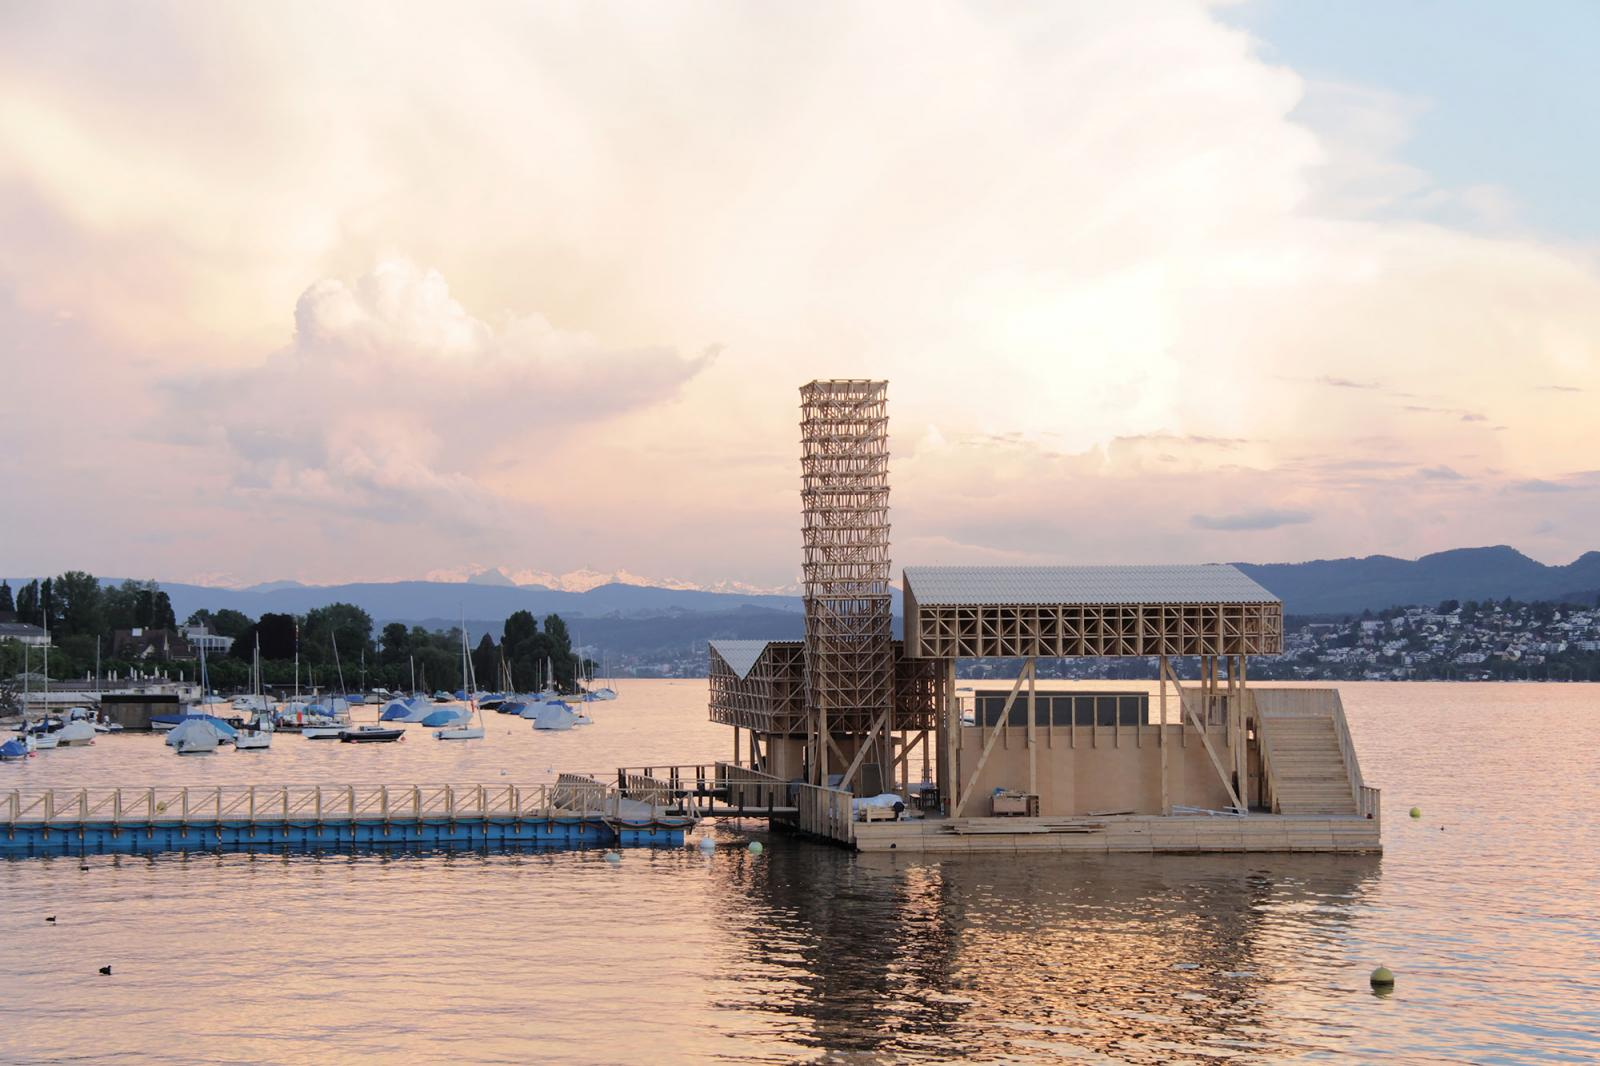 View of the Pavillon of Reflections on Lake Zurich Photo: Manifesta 11 / Wolfgang Träger